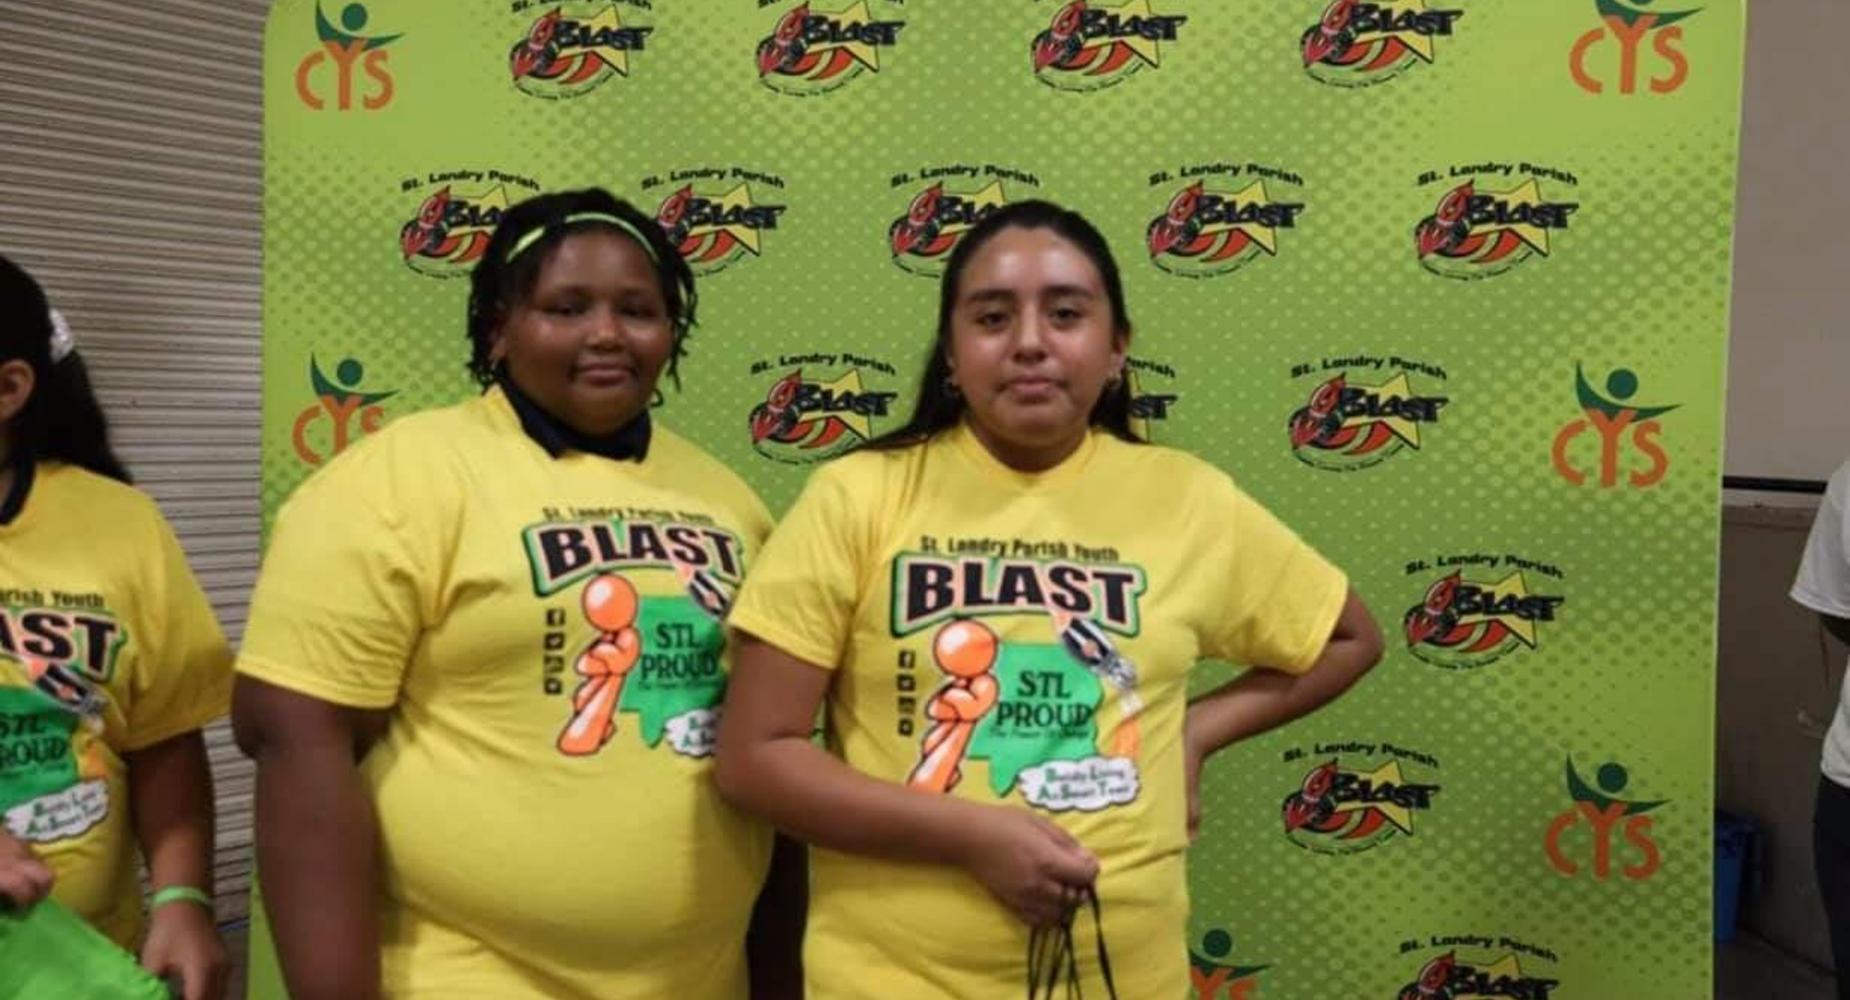 7TH GRADERS ATTENDED THE ST. LANDRY YOUTH BLAST